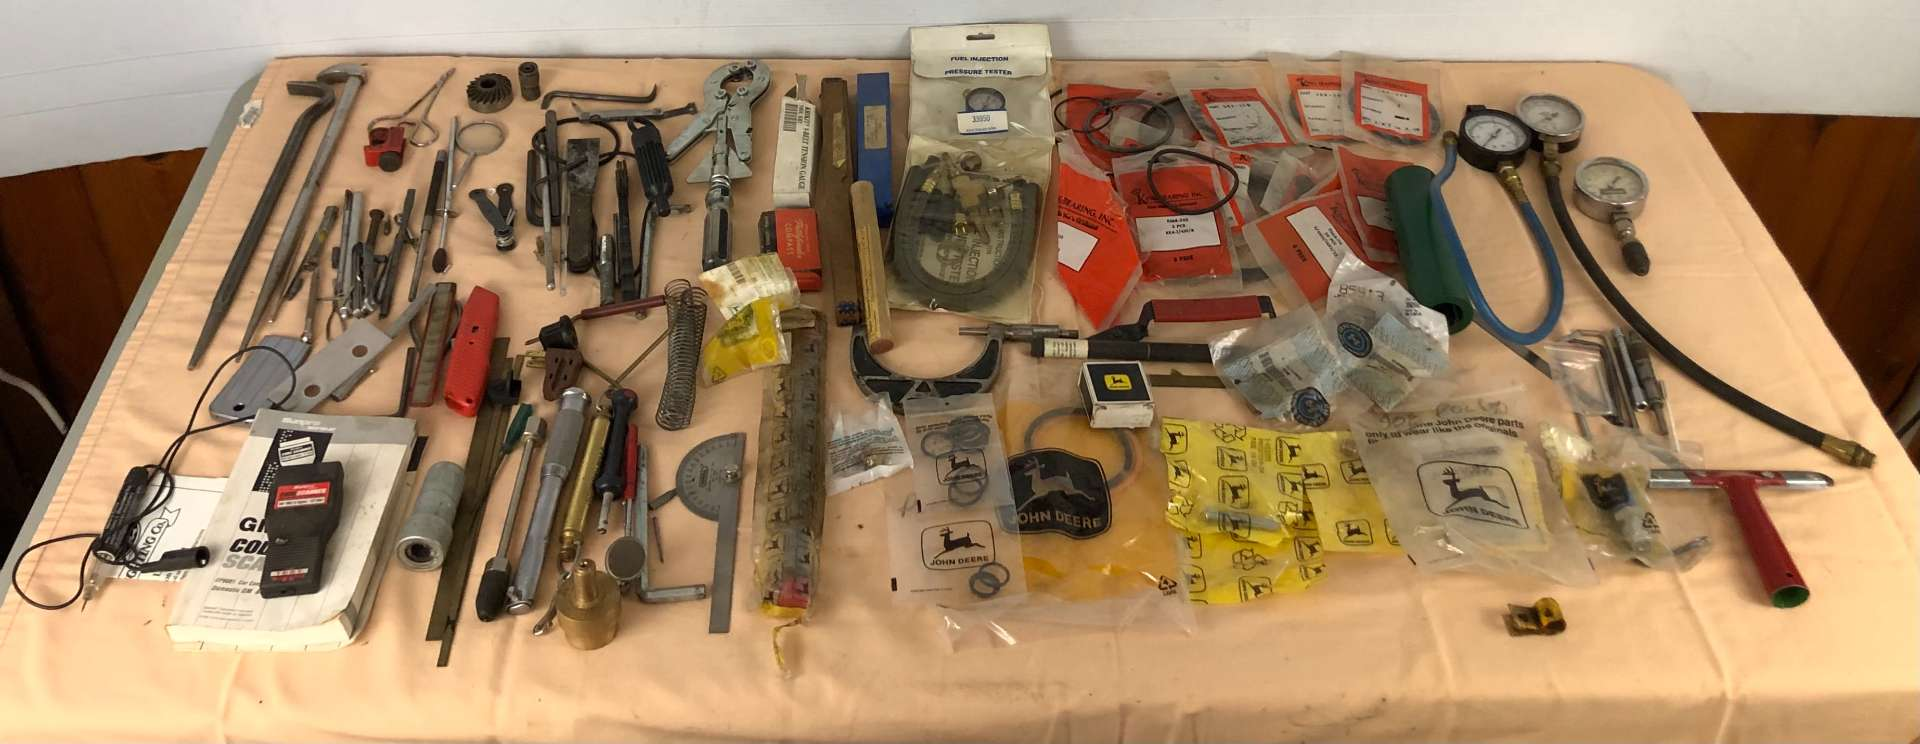 Lot # 283 - Large Lot of Tools, John Deere Parts and More (main image)